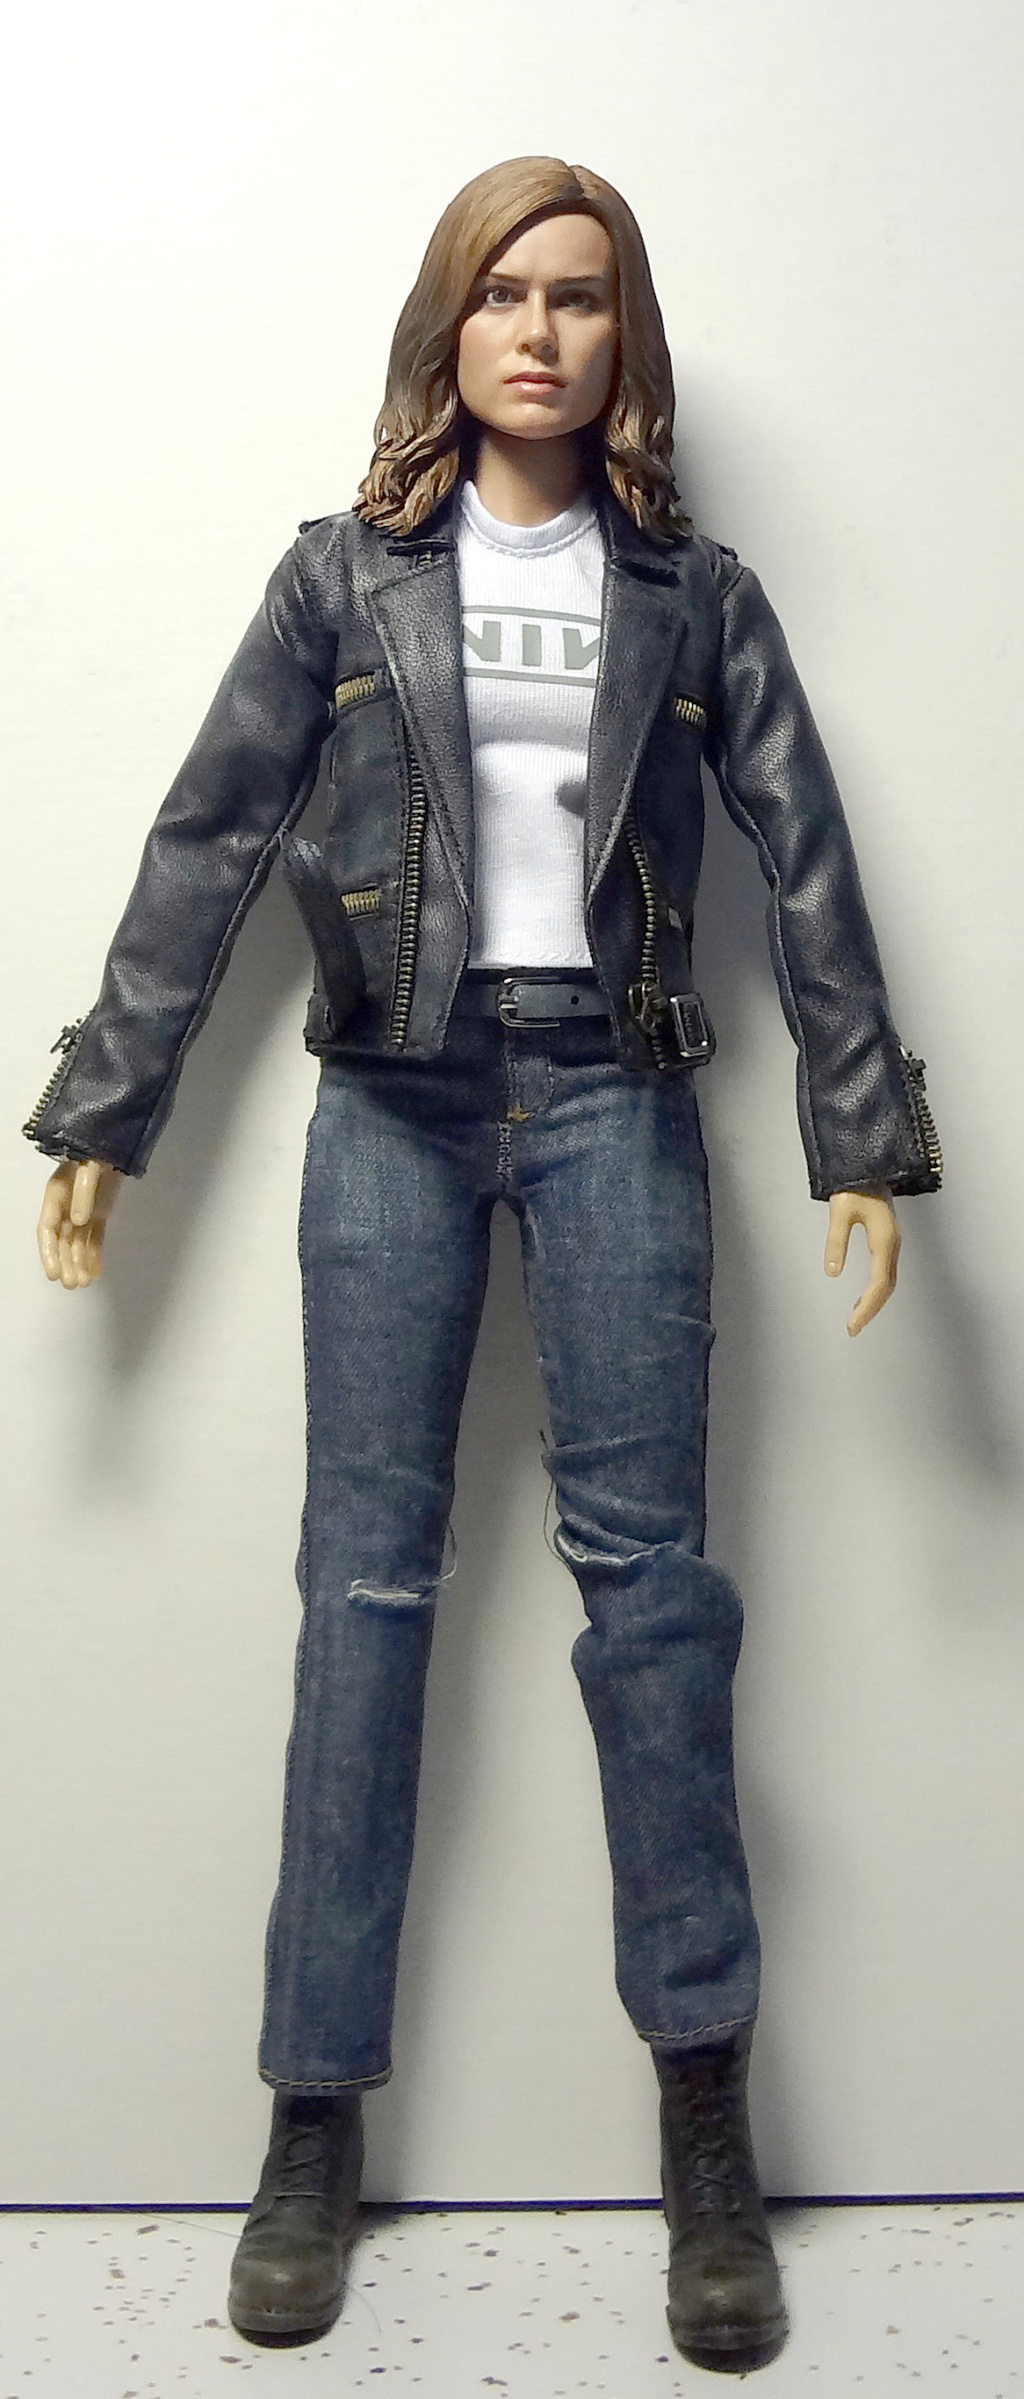 SWToys - NEW PRODUCT: Swtoys FS028 1/6 Scale Danvers figure Dsc00918